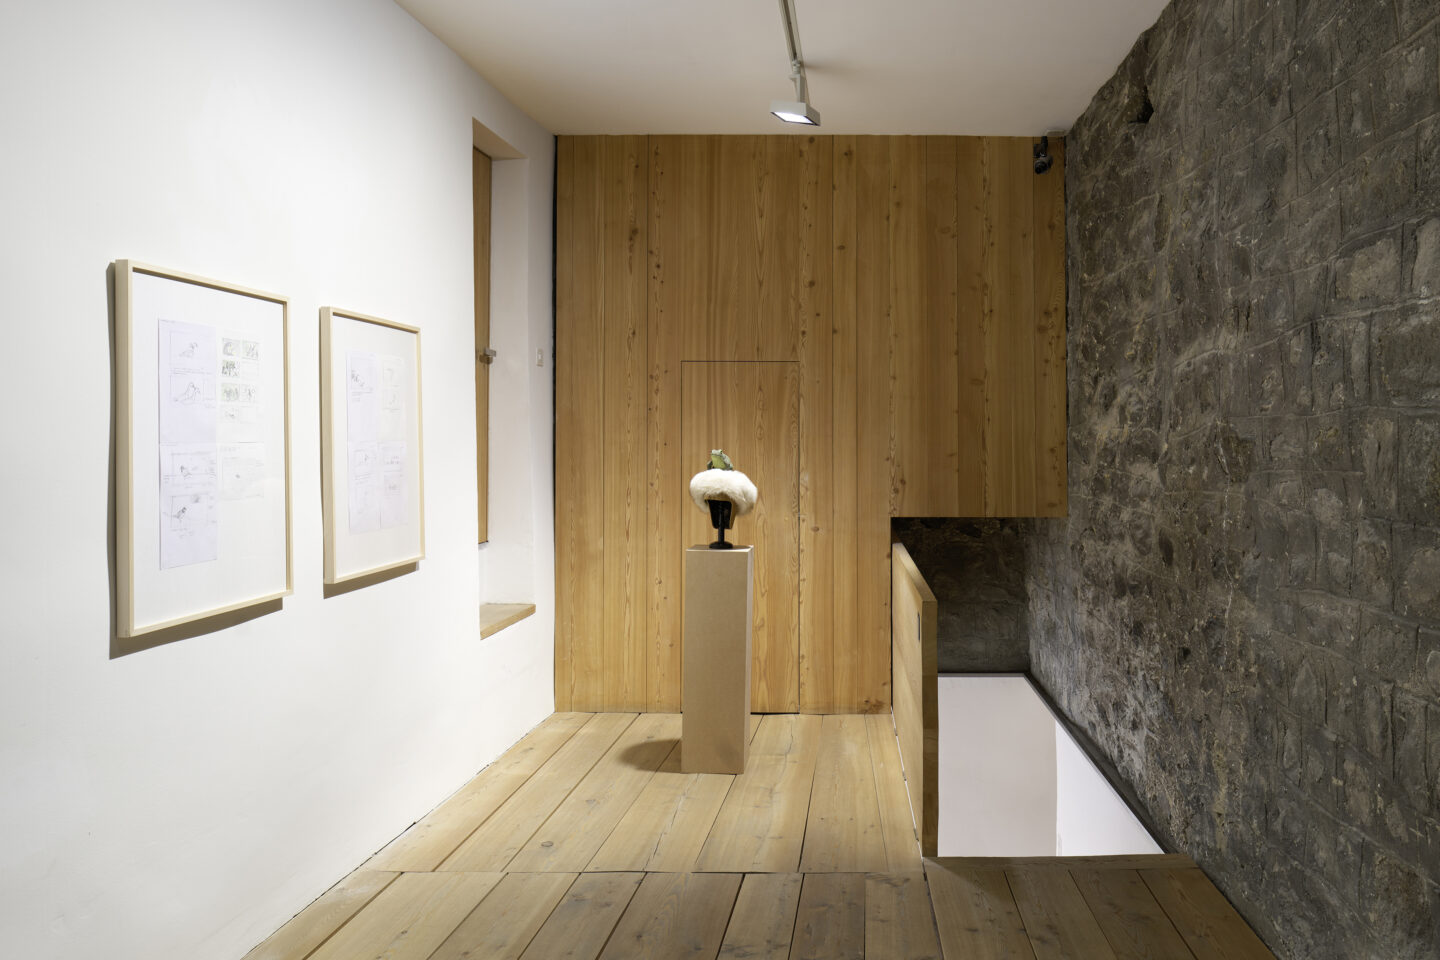 Exhibition View Groupshow «Absolutely Tschudi» at Galerie Tschudi, Zuoz, 2019 / Photo: Ralph Feiner, Malans / Courtesy: the artists and Galerie Tschudi, Zuoz